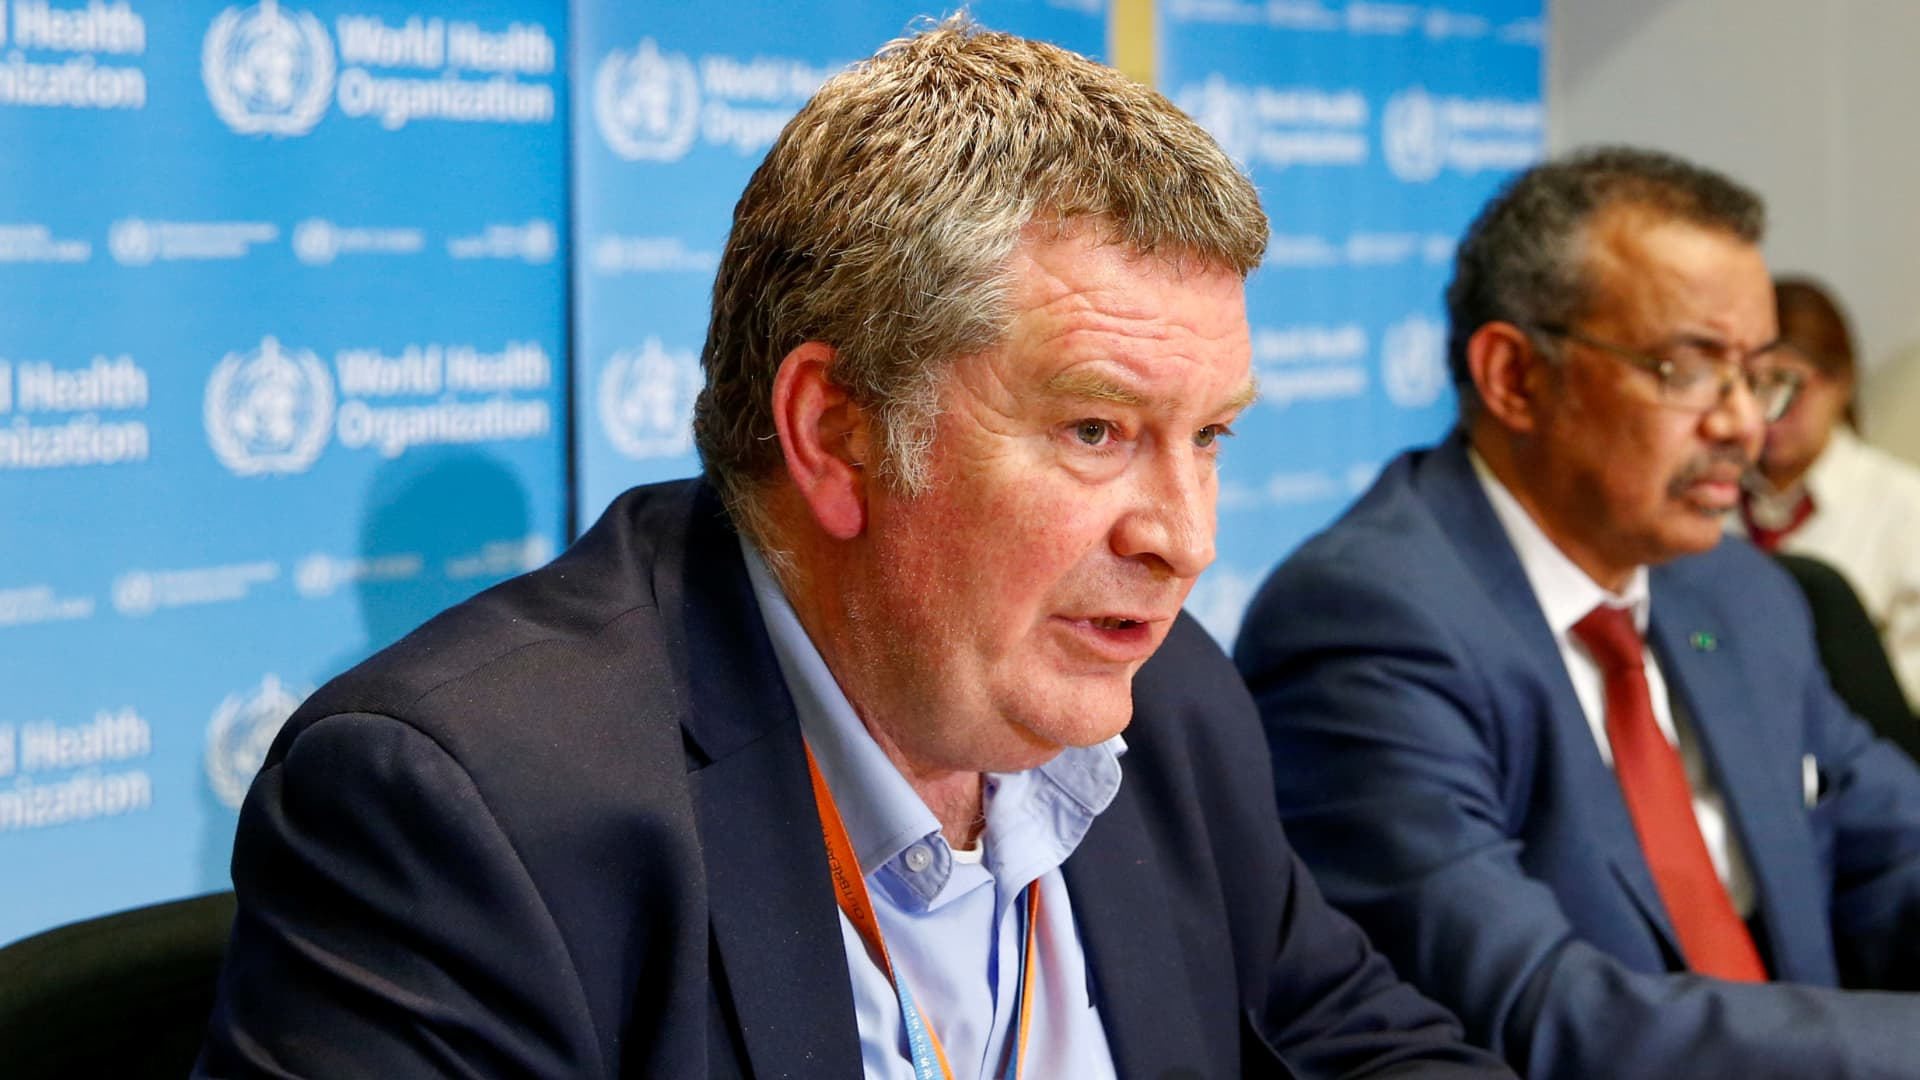 Executive Director of the World Health Organization's (WHO) emergencies program Mike Ryan speaks at a news conference on the novel coronavirus (2019-nCoV) in Geneva, Switzerland.